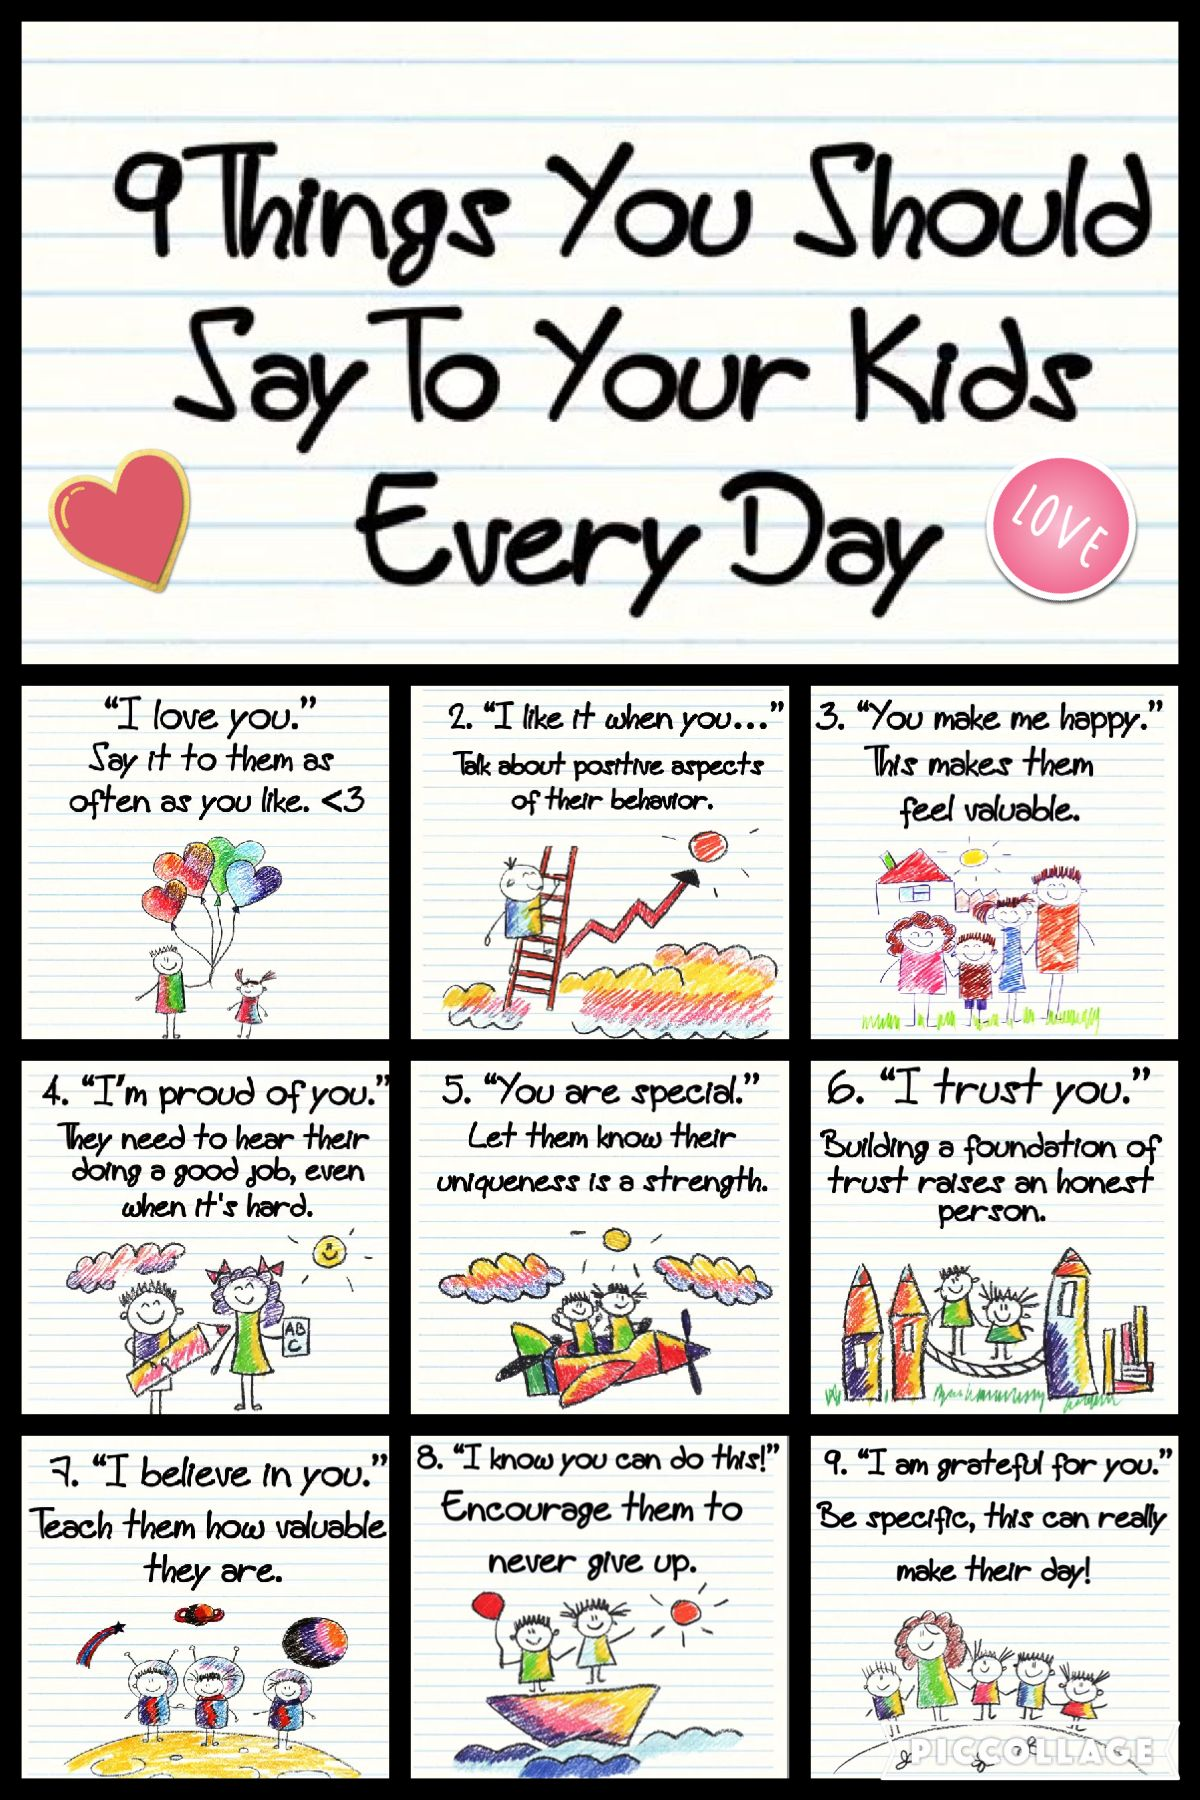 9 things you should say to your kids every day like i love you and im proud of you, you are special.